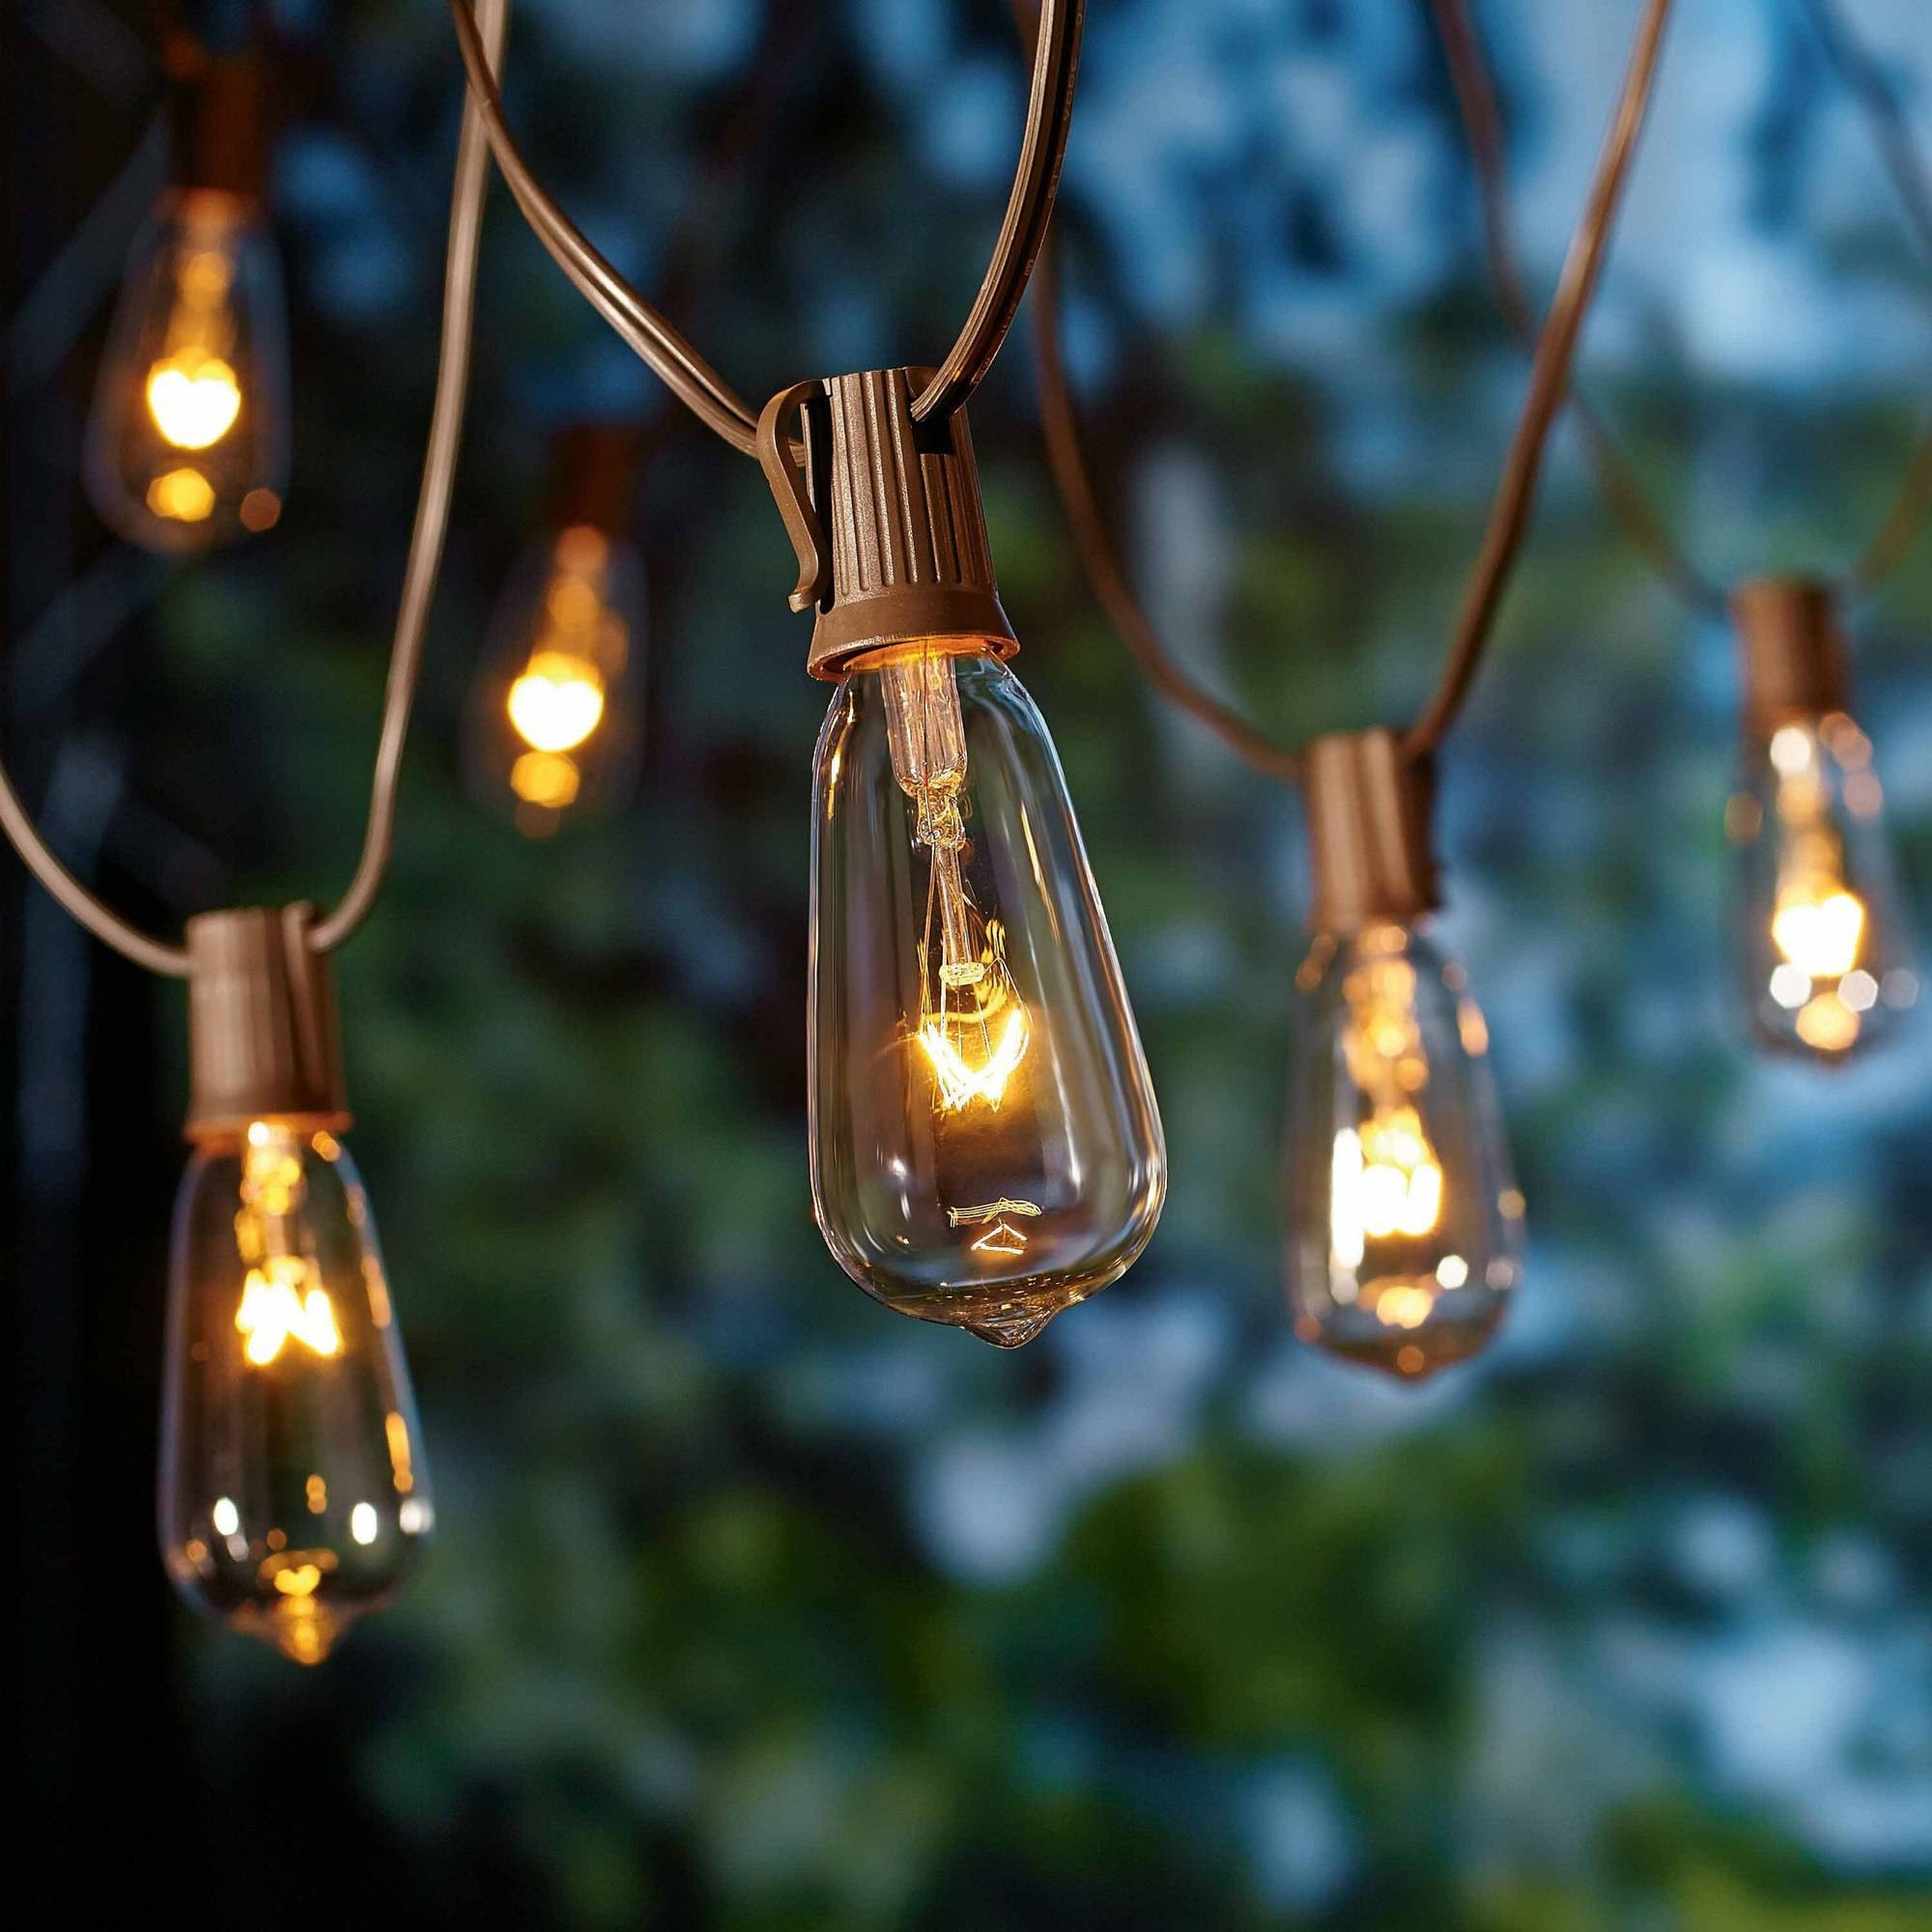 Better Homes And Gardens Outdoor Glass Edison String Lights, 10 With Regard To Best And Newest Walmart Outdoor Lanterns (Gallery 2 of 20)